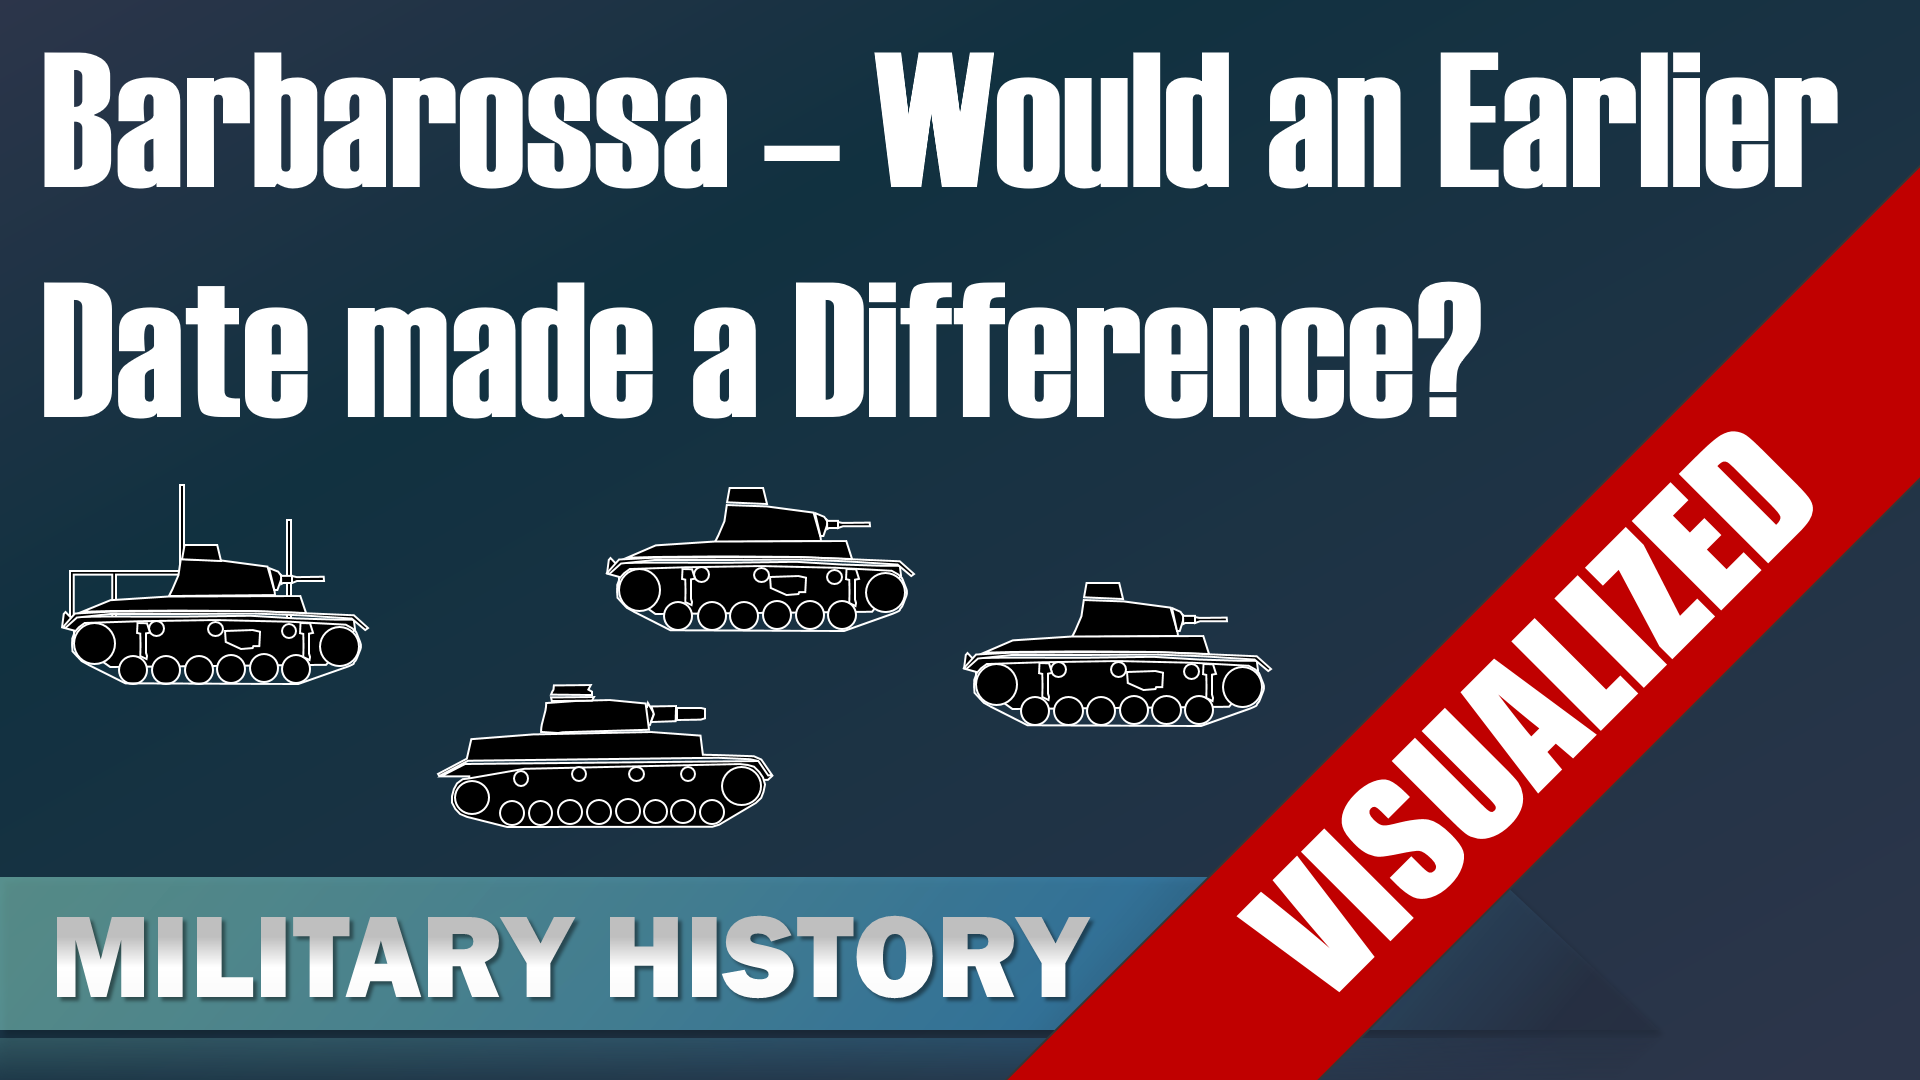 Operation Barbarossa Would An Earlier Date Made A Difference